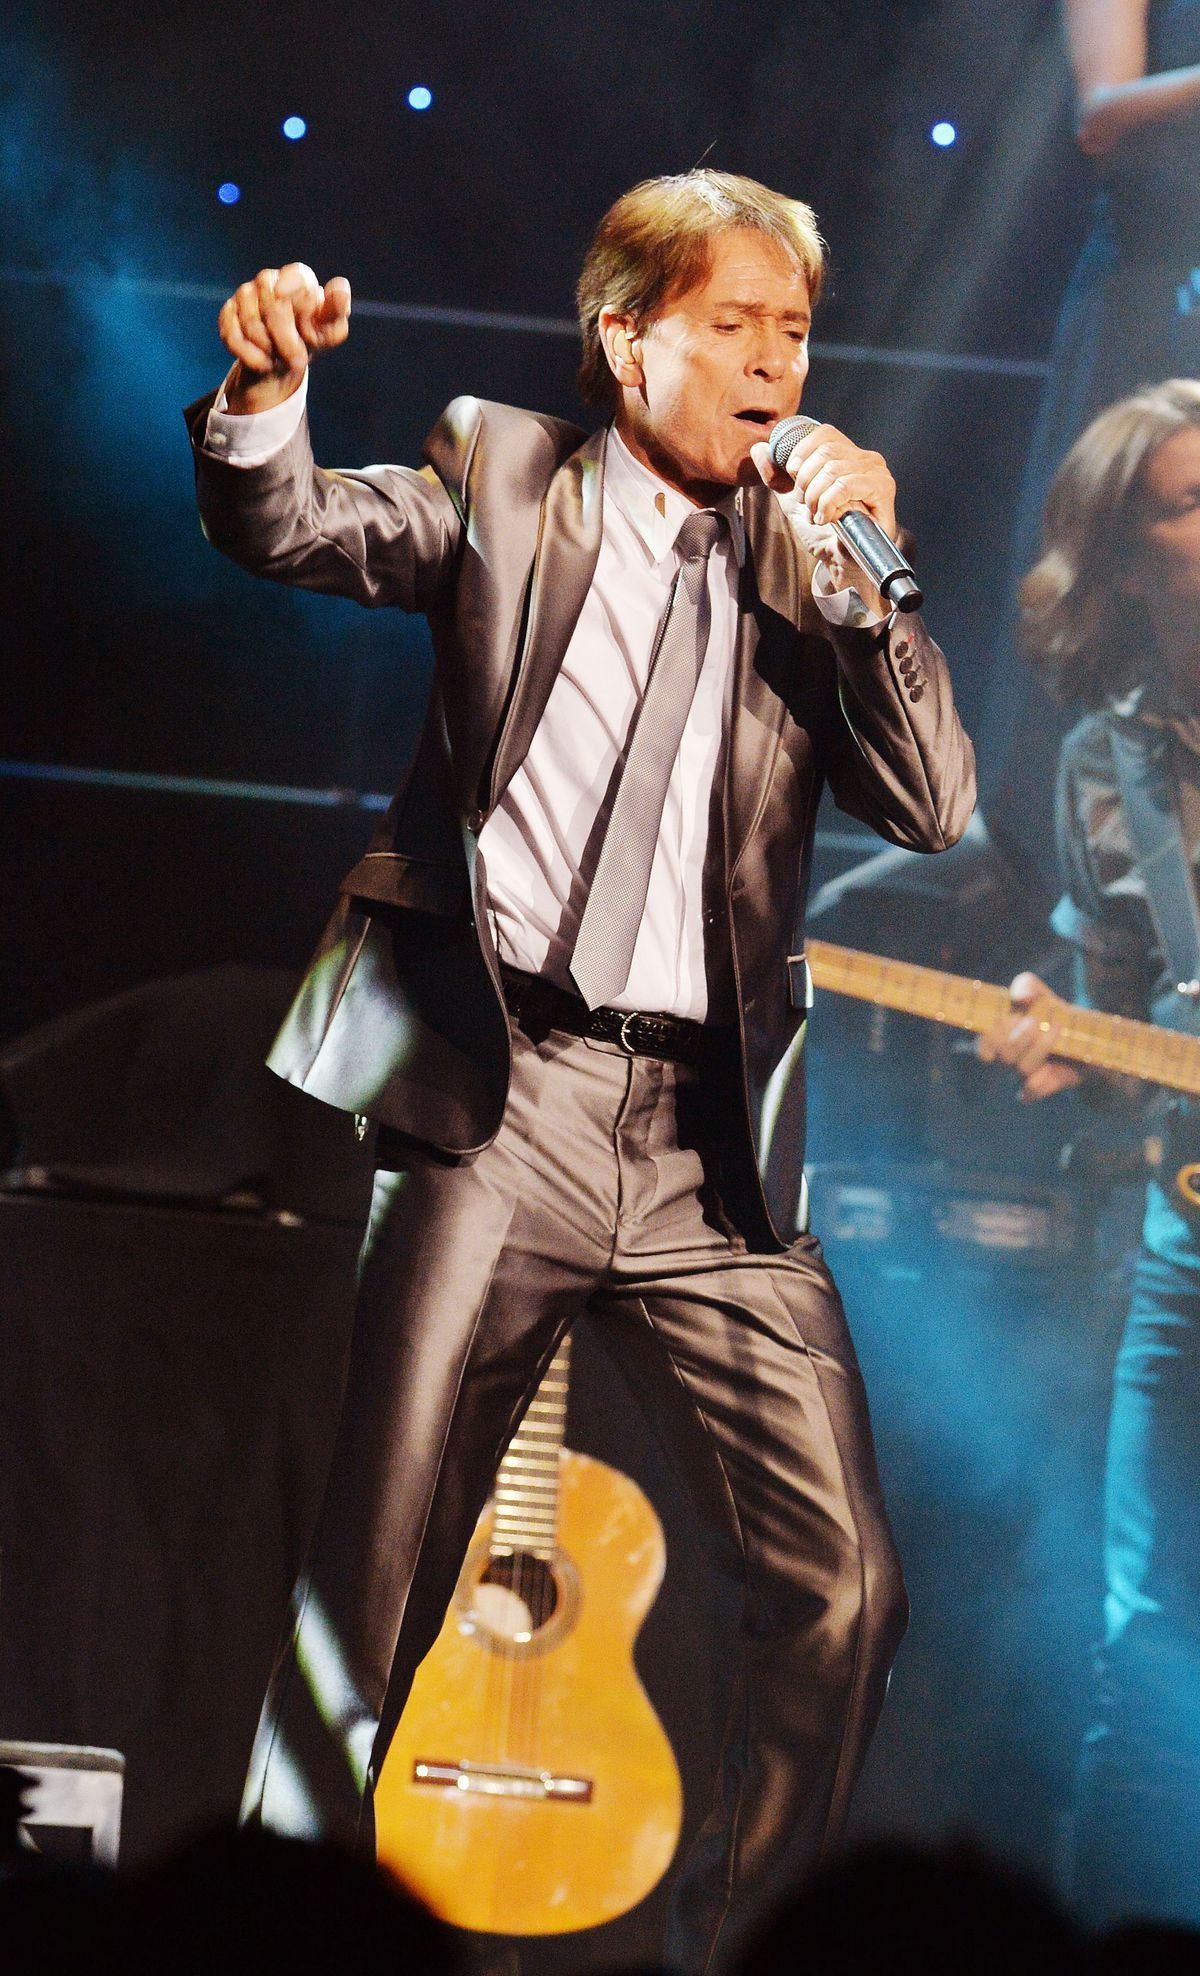 Cliff Richard performing in 2015